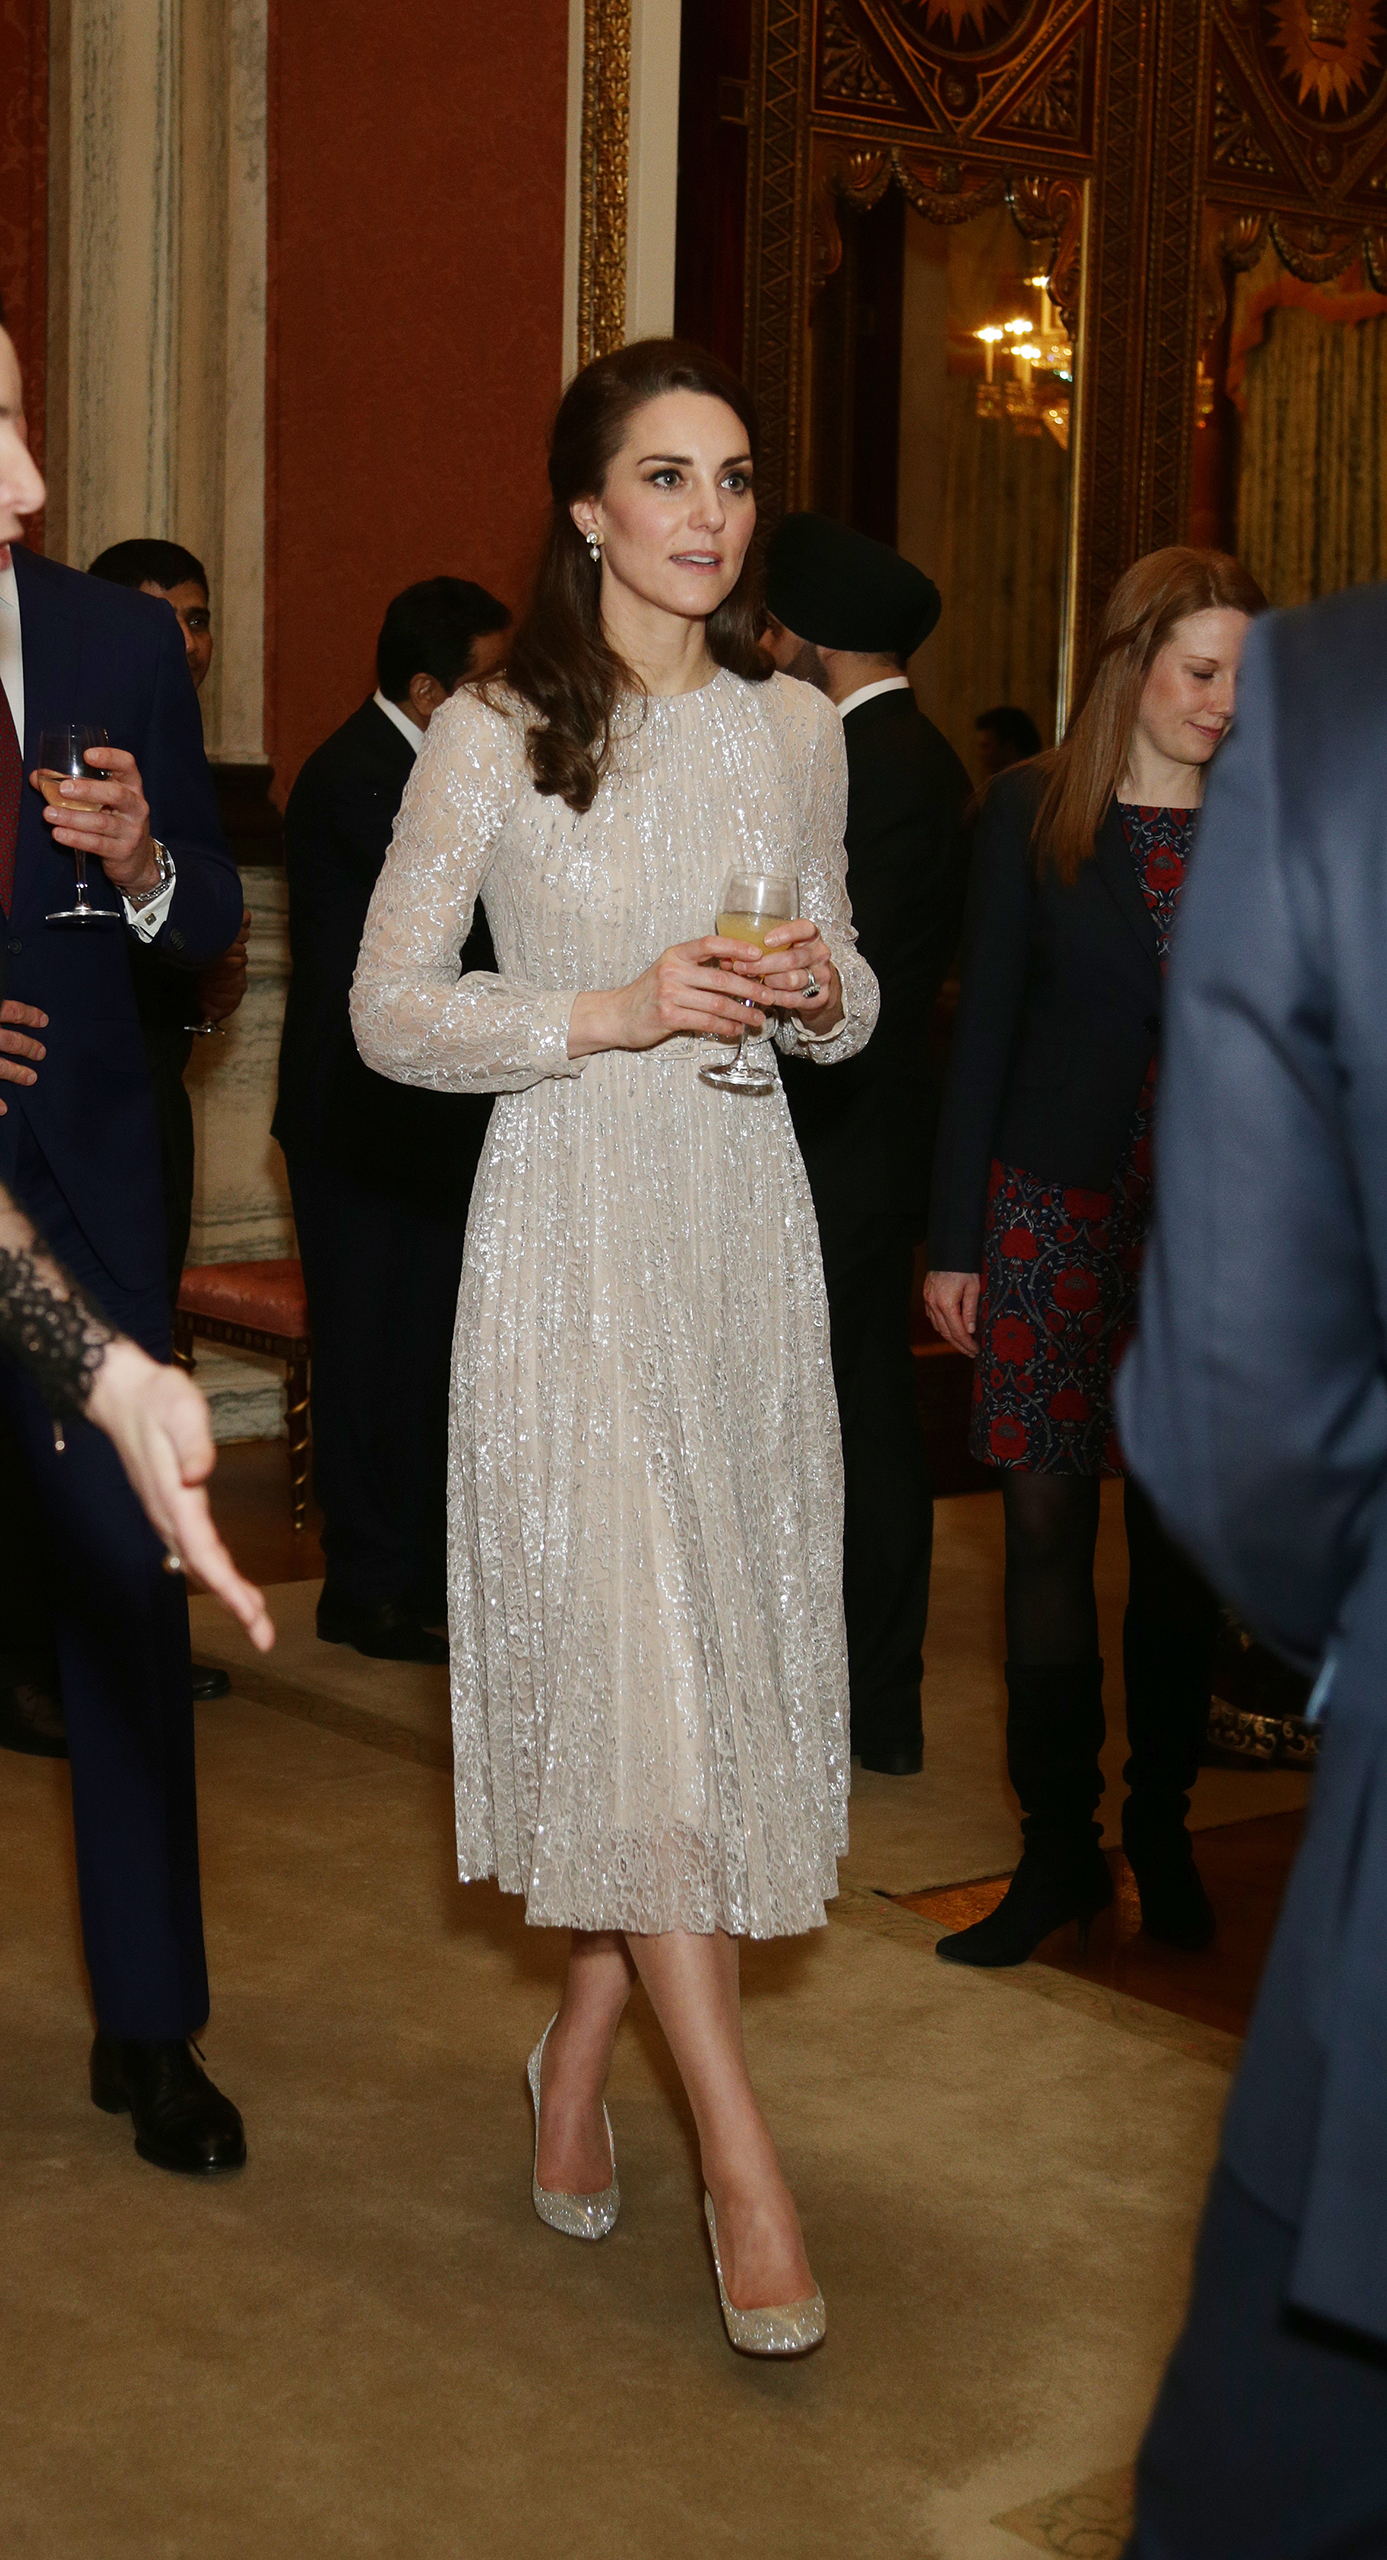 Catherine, Duchess of Cambridge, attends a reception to mark the launch of the U.K.-India Year of Culture 2017 in London on Feb. 27, 2017.